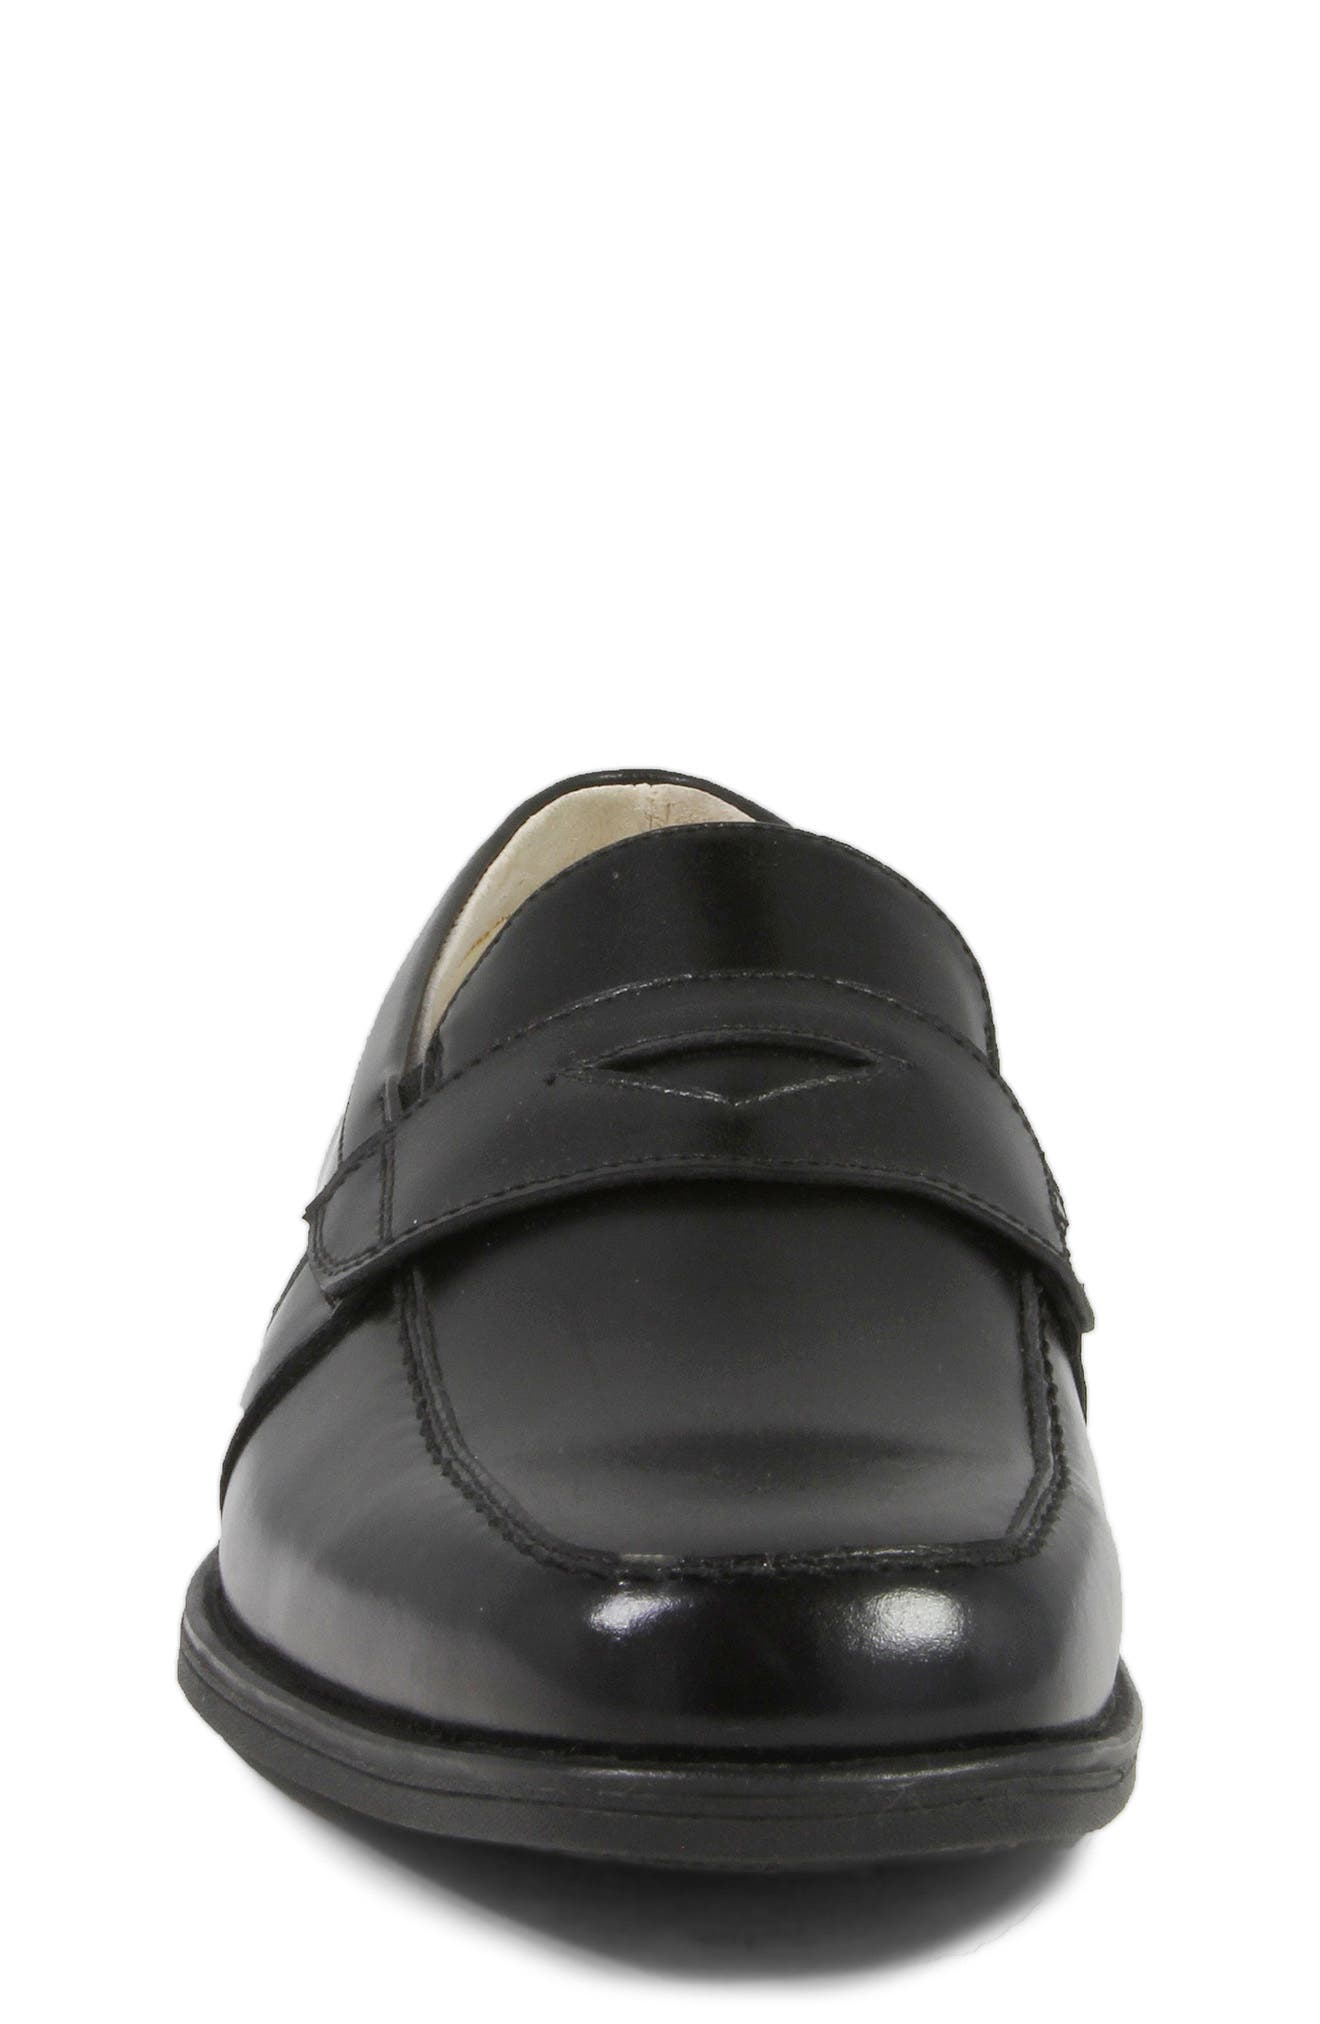 'Reveal' Penny Loafer,                             Alternate thumbnail 4, color,                             BLACK